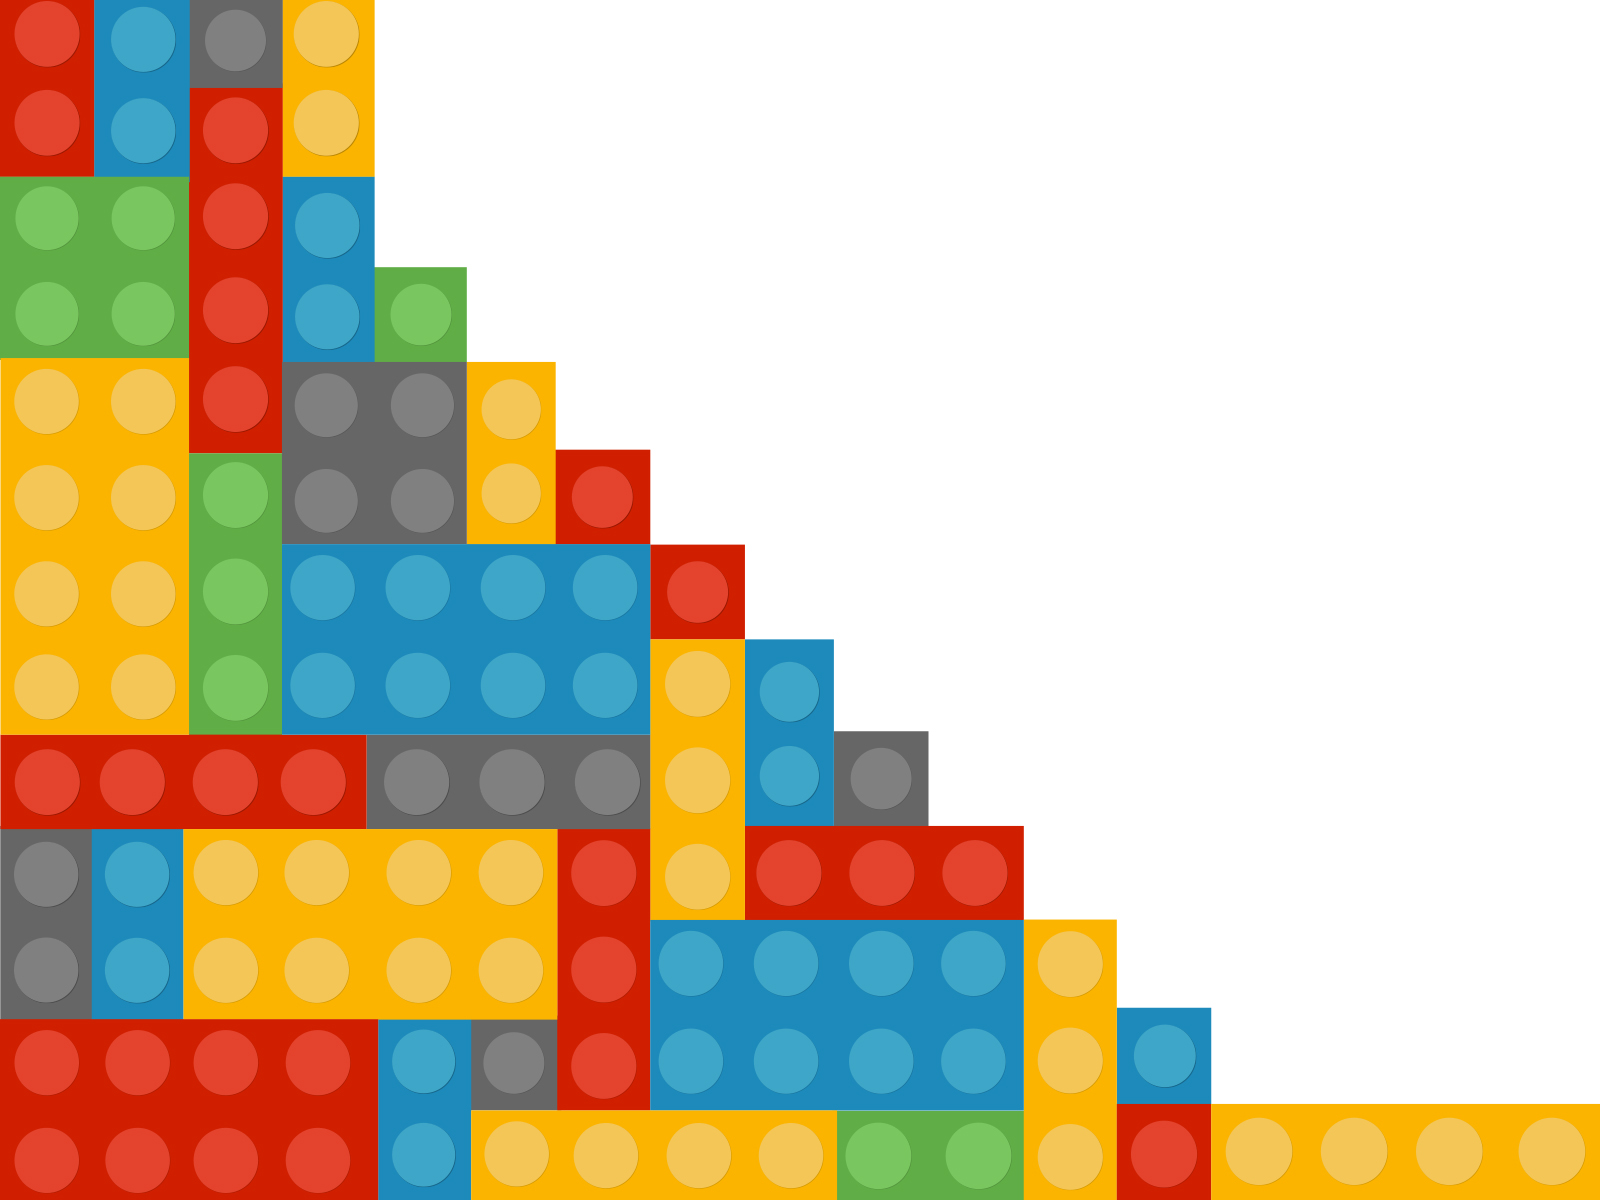 Lego backgrounds 3d blue games green red yellow for Tv game show powerpoint templates